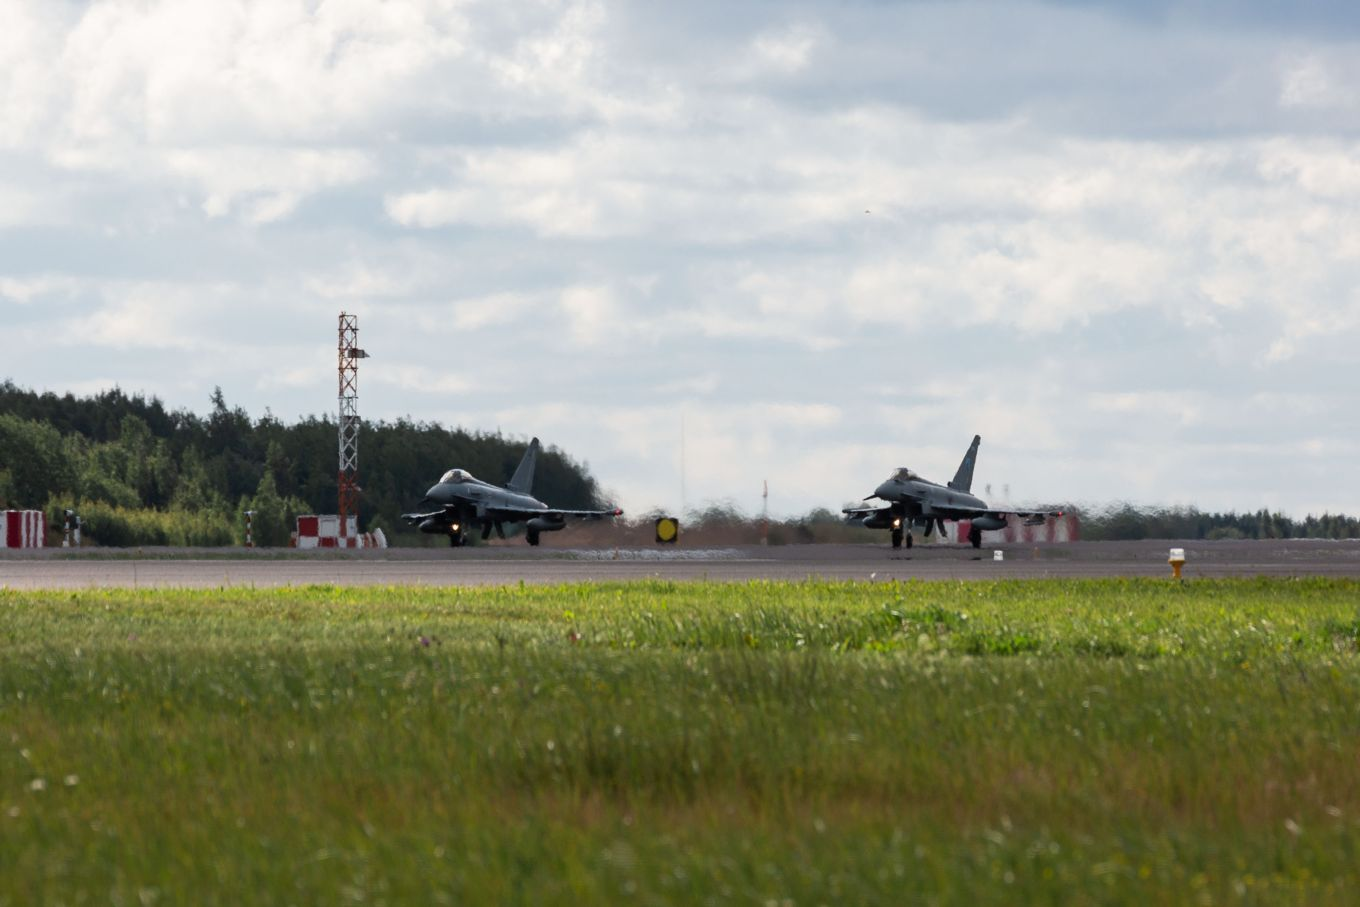 Image shows an RAF Typhoon and a German Eurofighter taxiing on the runway.